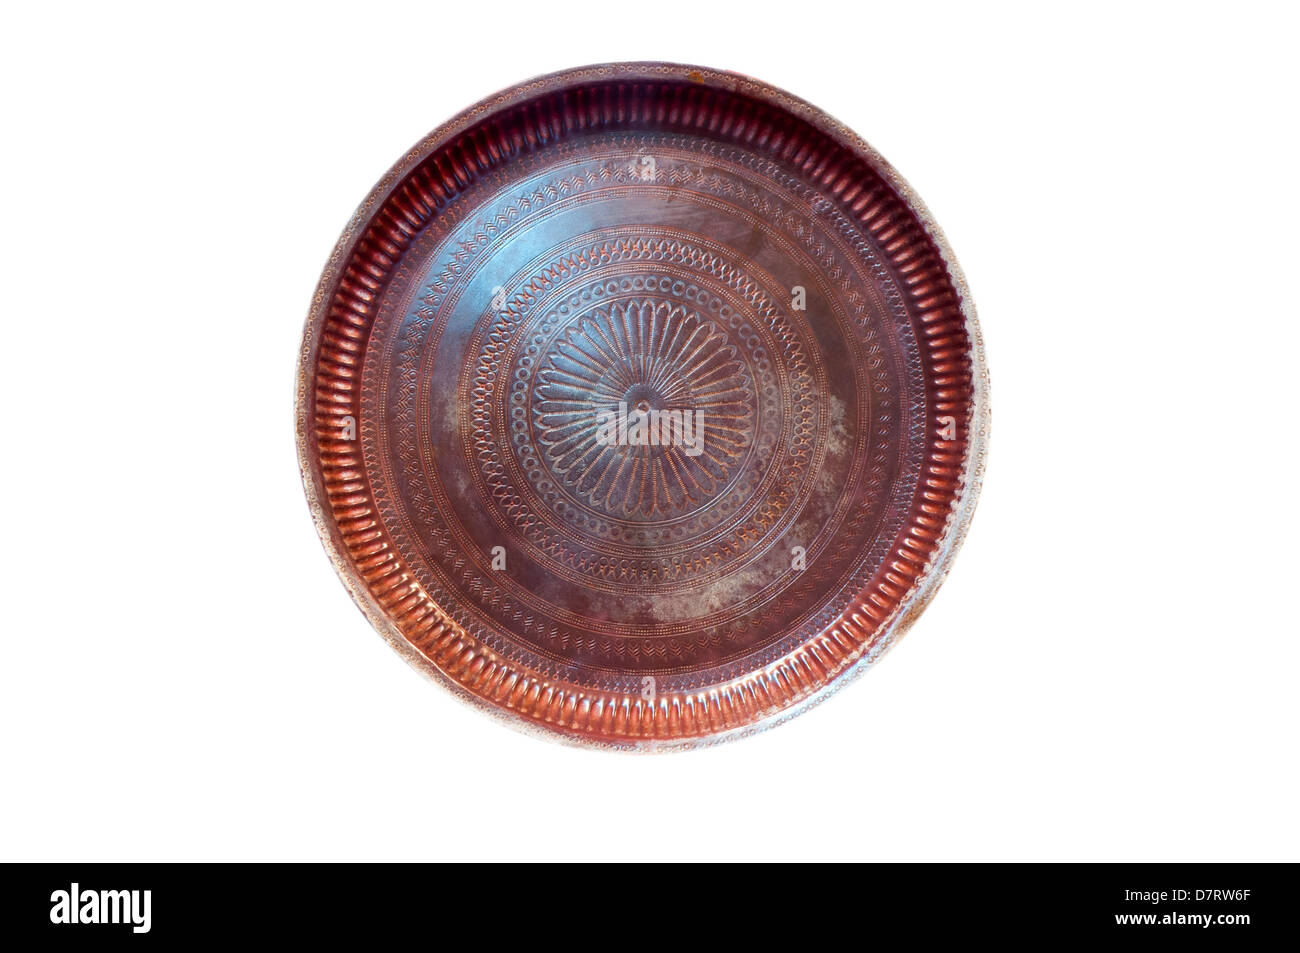 Antique copper plate isolated in white background - Stock Image